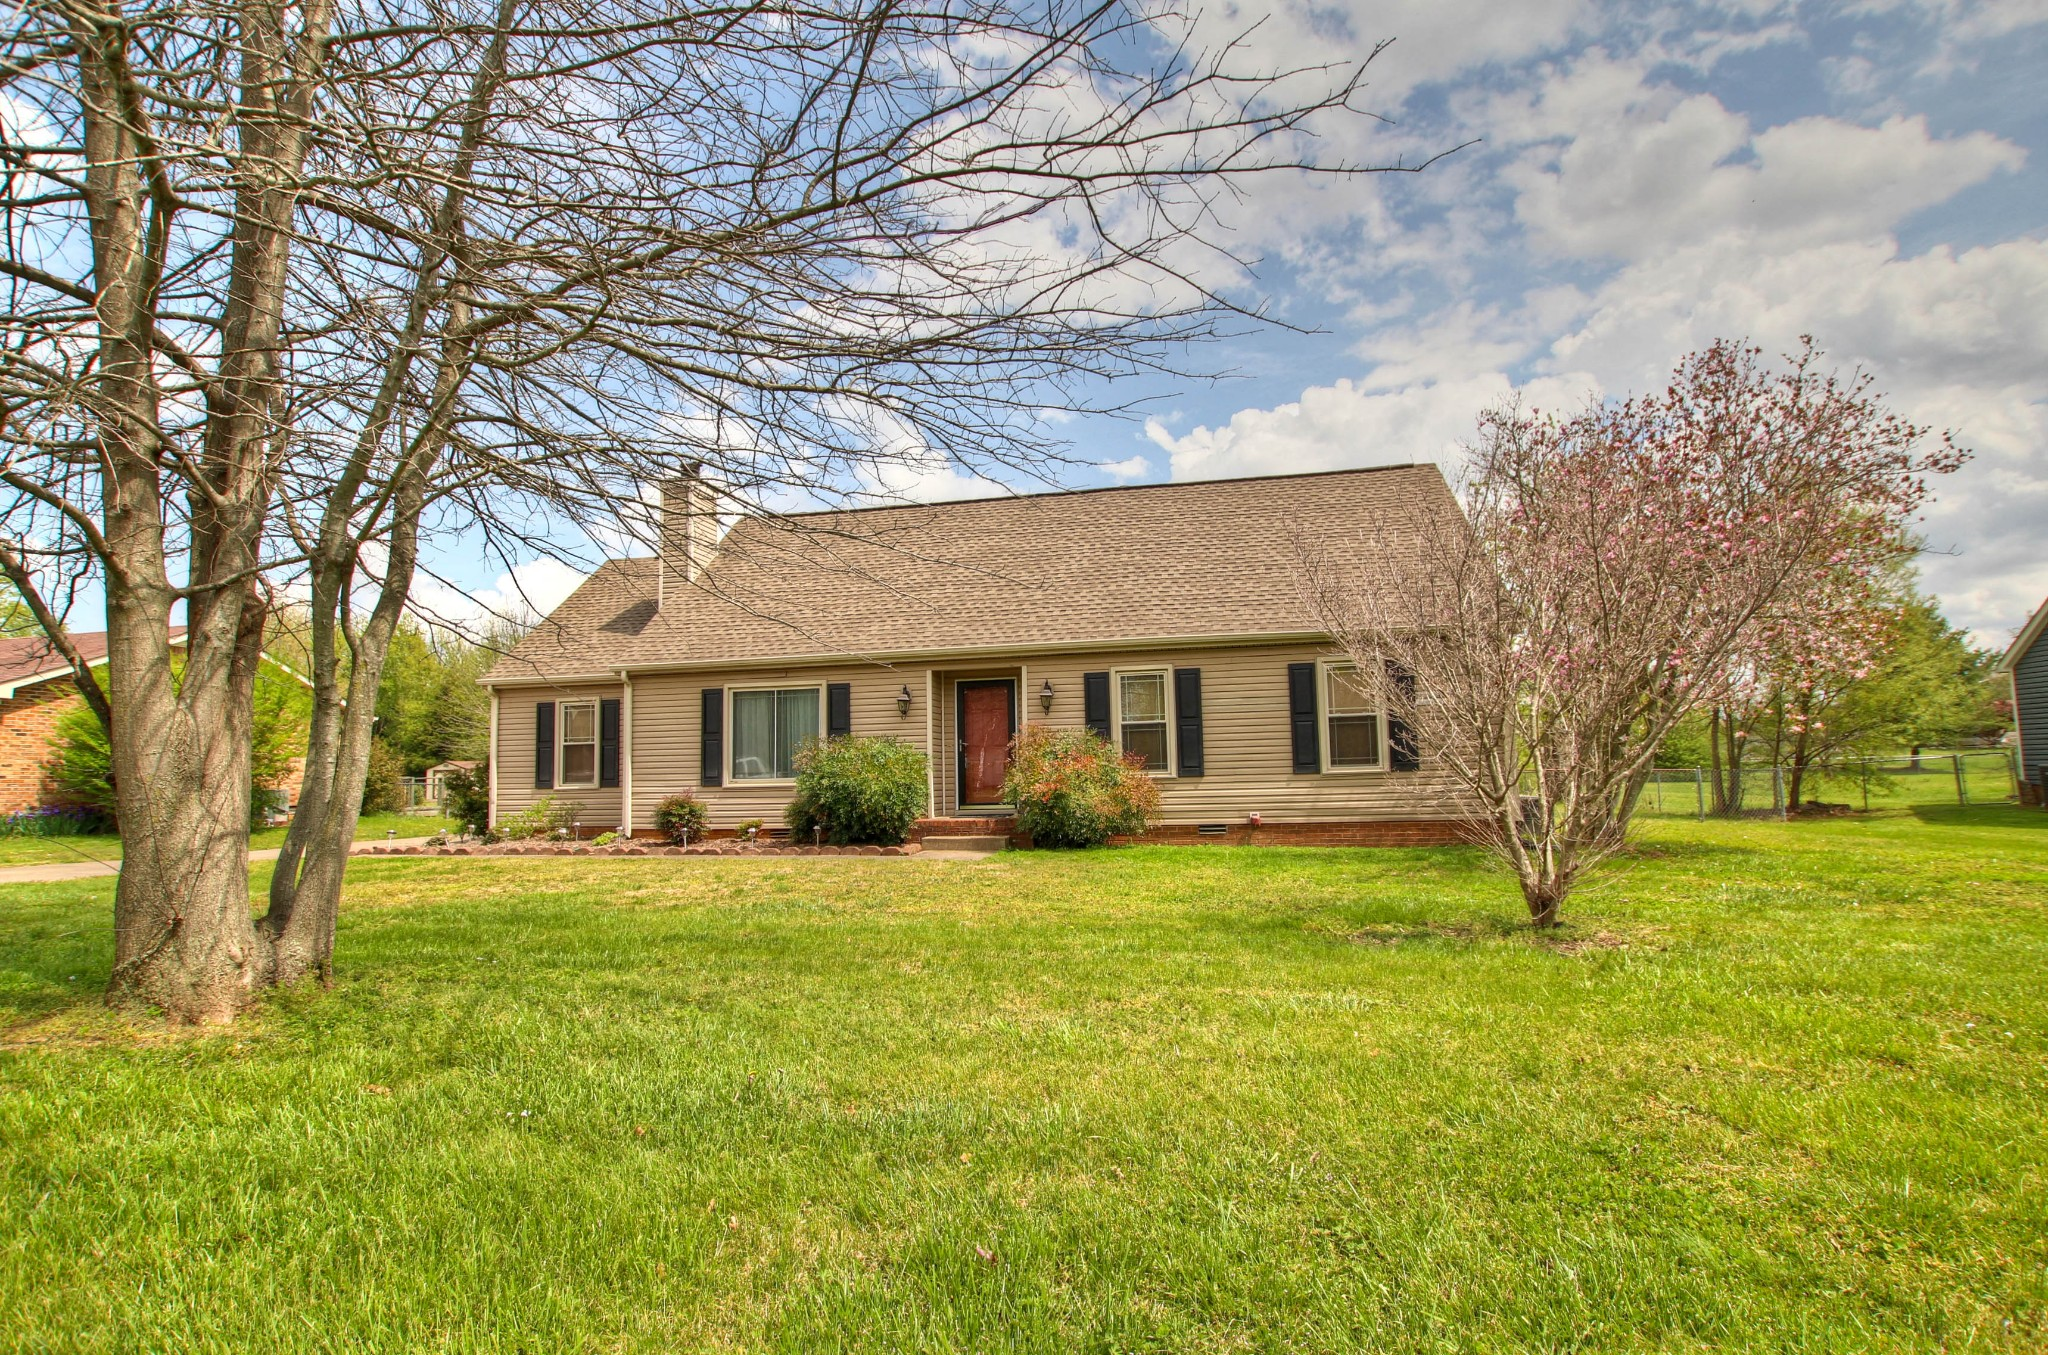 Great location!  County taxes only- triple Blackman schools!  Home sits on just over half an acre.  Fresh paint, refinished baths.  36x30, 3 car detached garage/workshop w/ electric & storage.  700 expandable sq. ft. upstairs already partially drywalled.